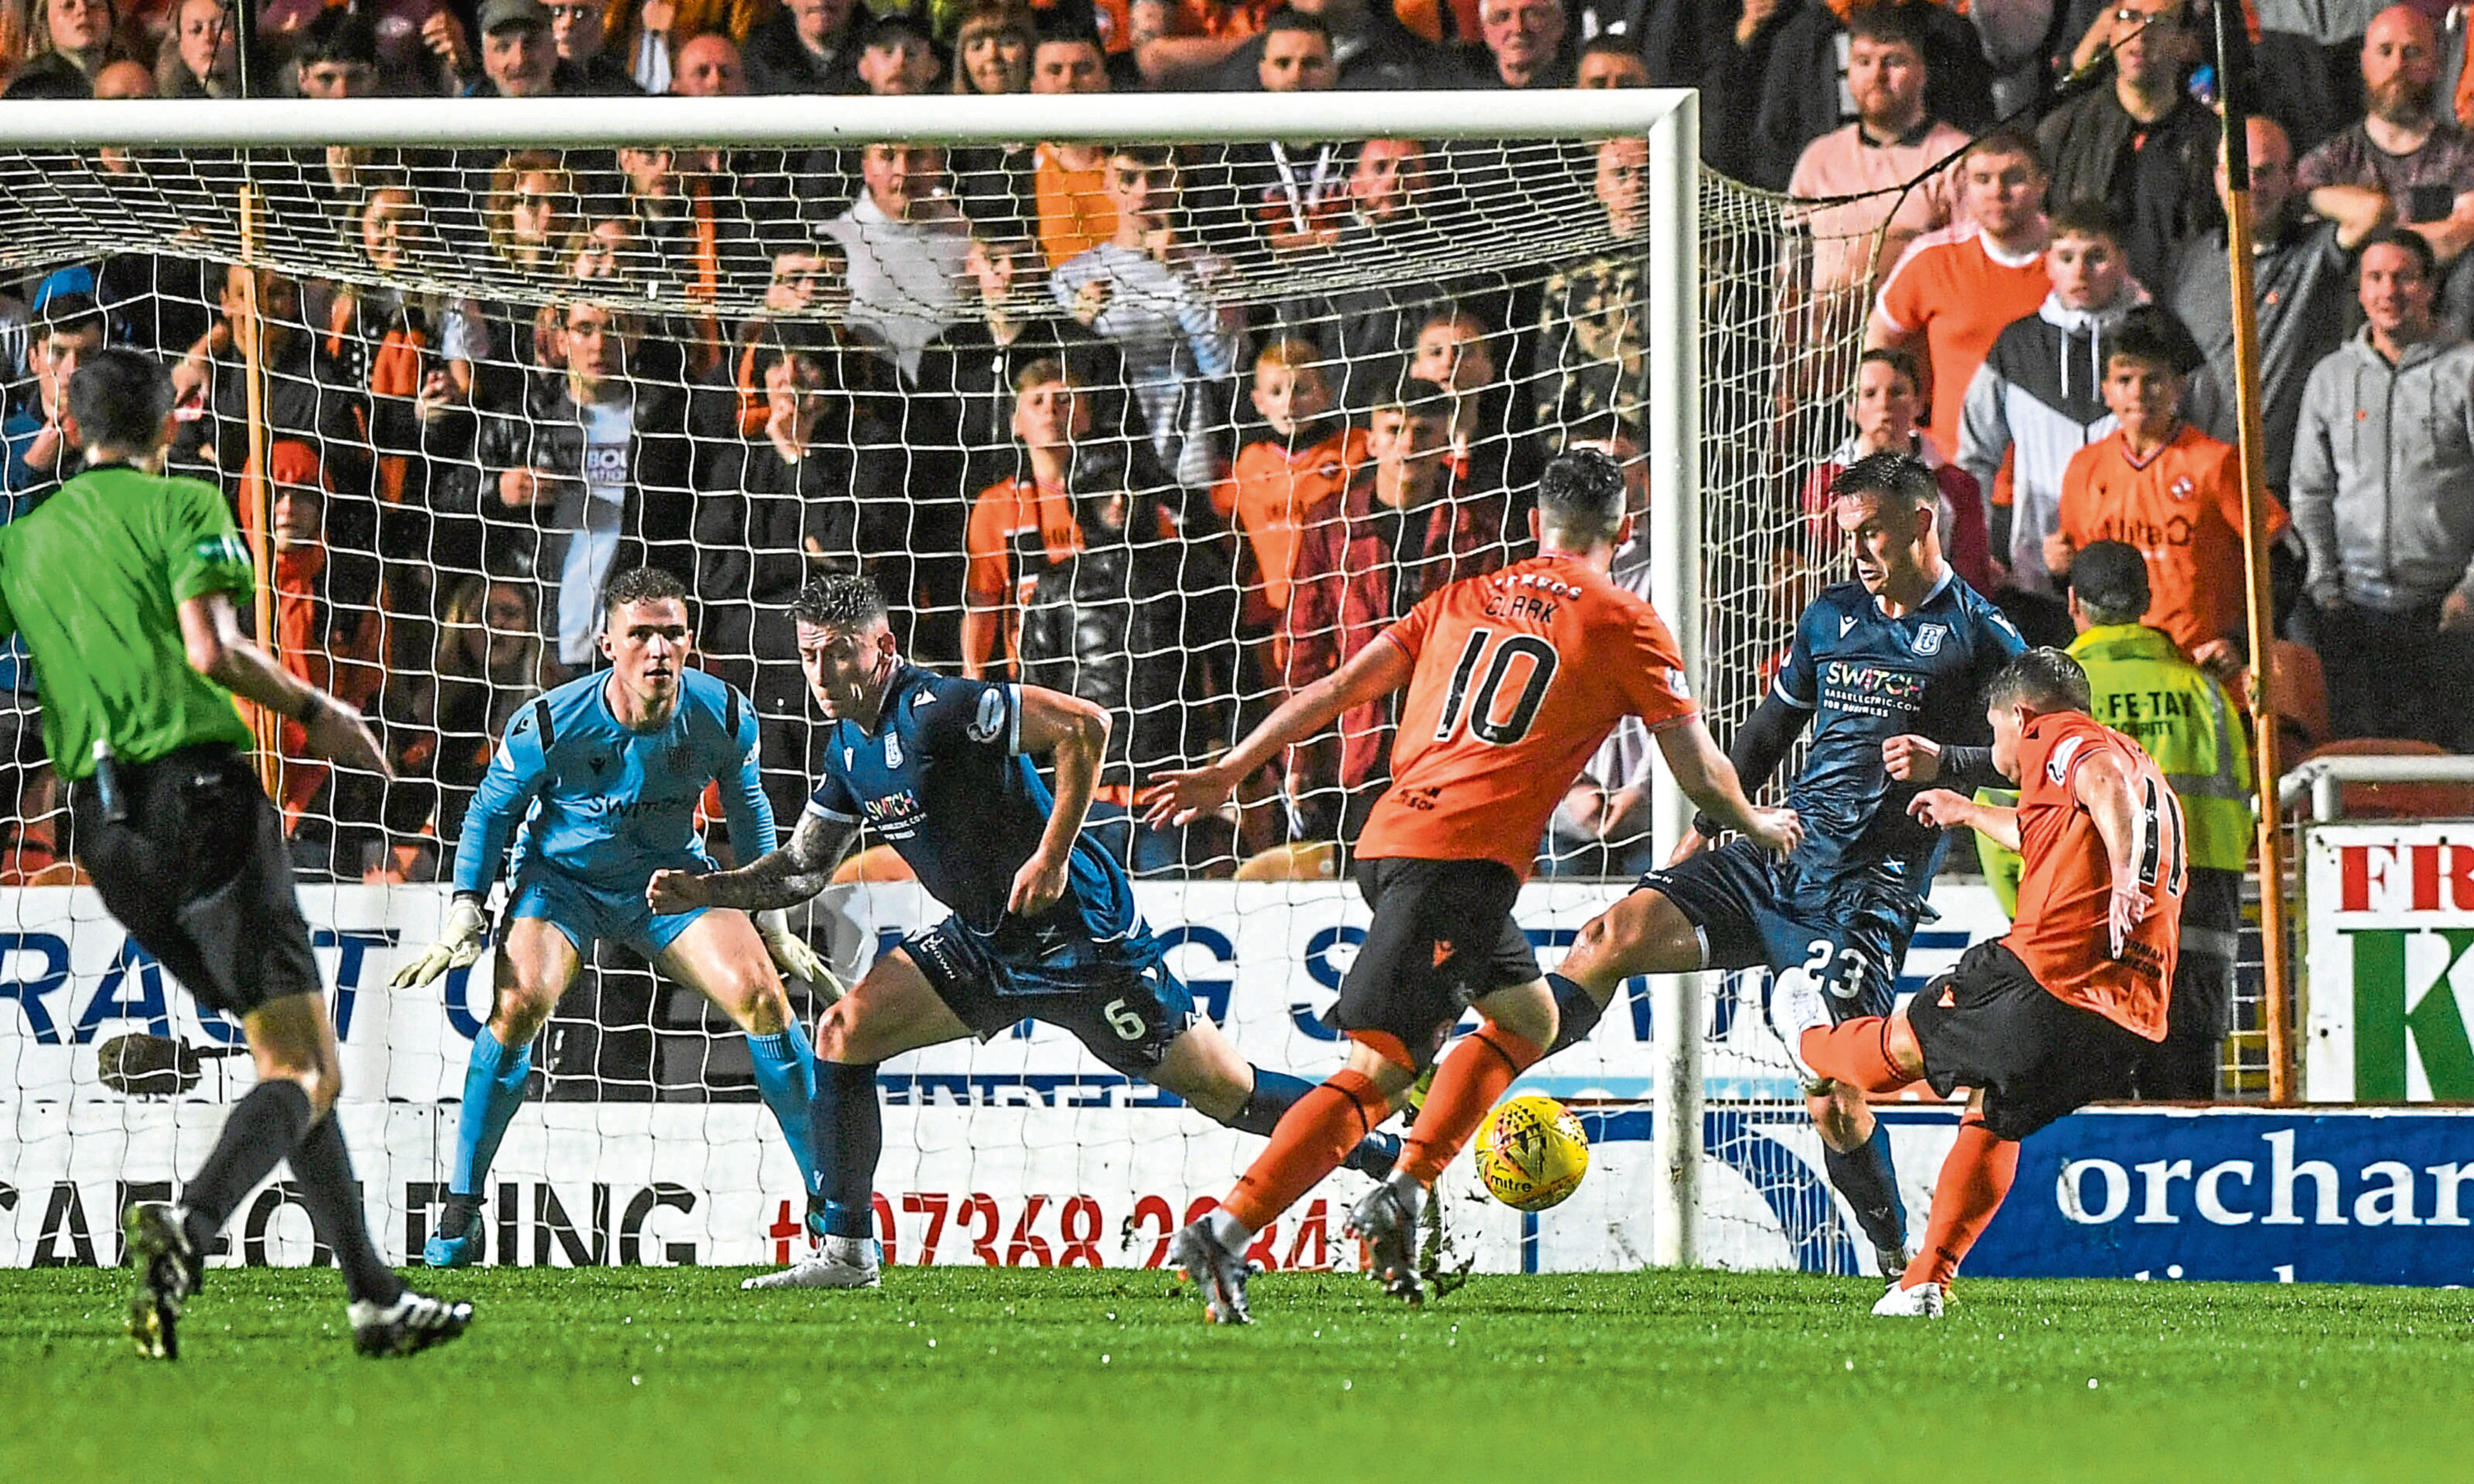 United's Cammy Smith scores to make it 6-2 during the Dundee derby in August.